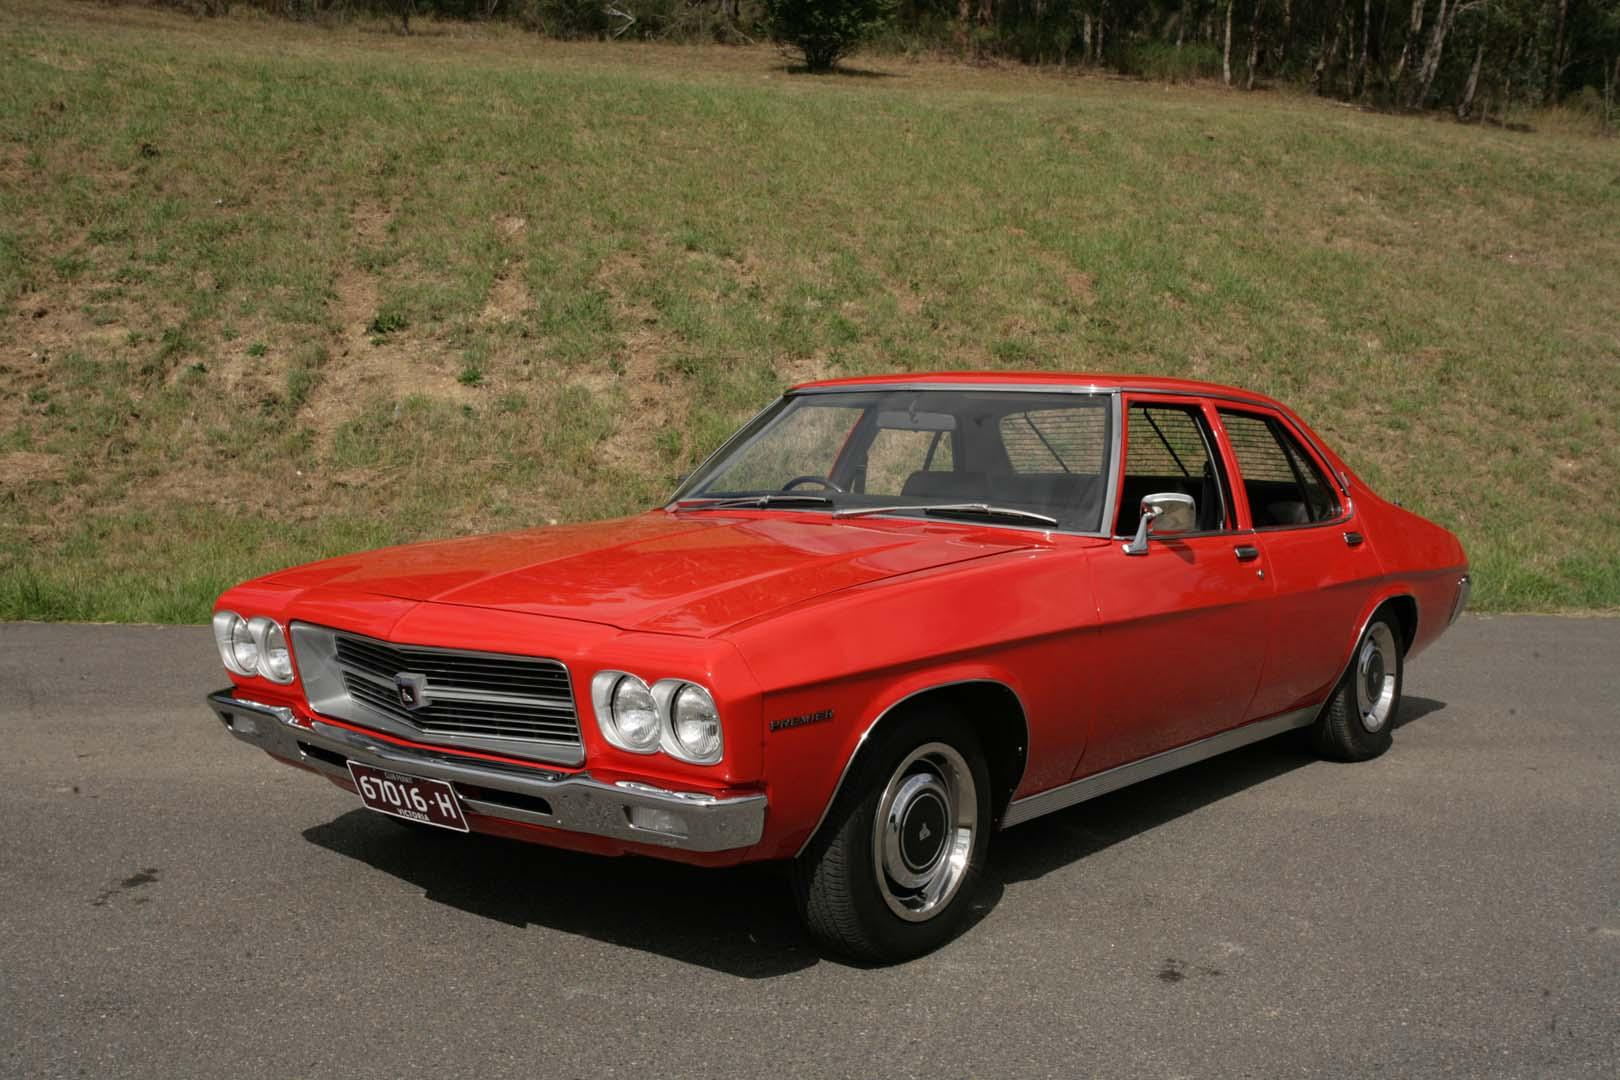 Feature 1972 Holden Hq Premier Sedan Just Cars